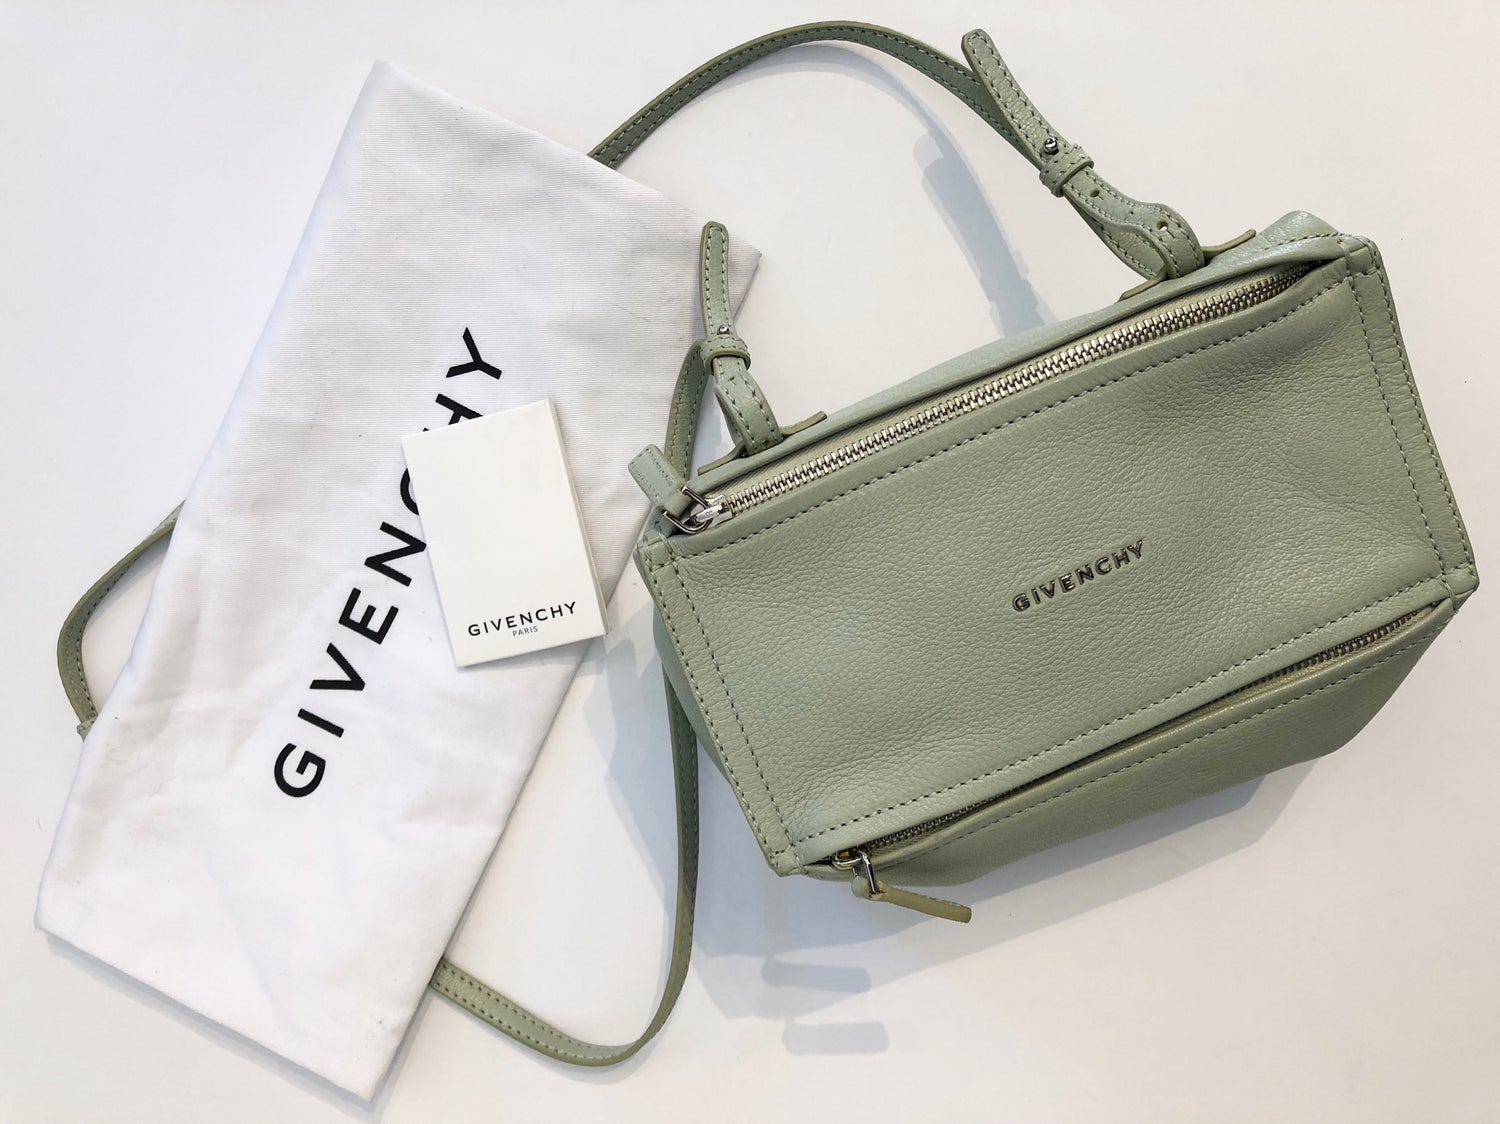 Image of GIVENCHY PANDORA BAG